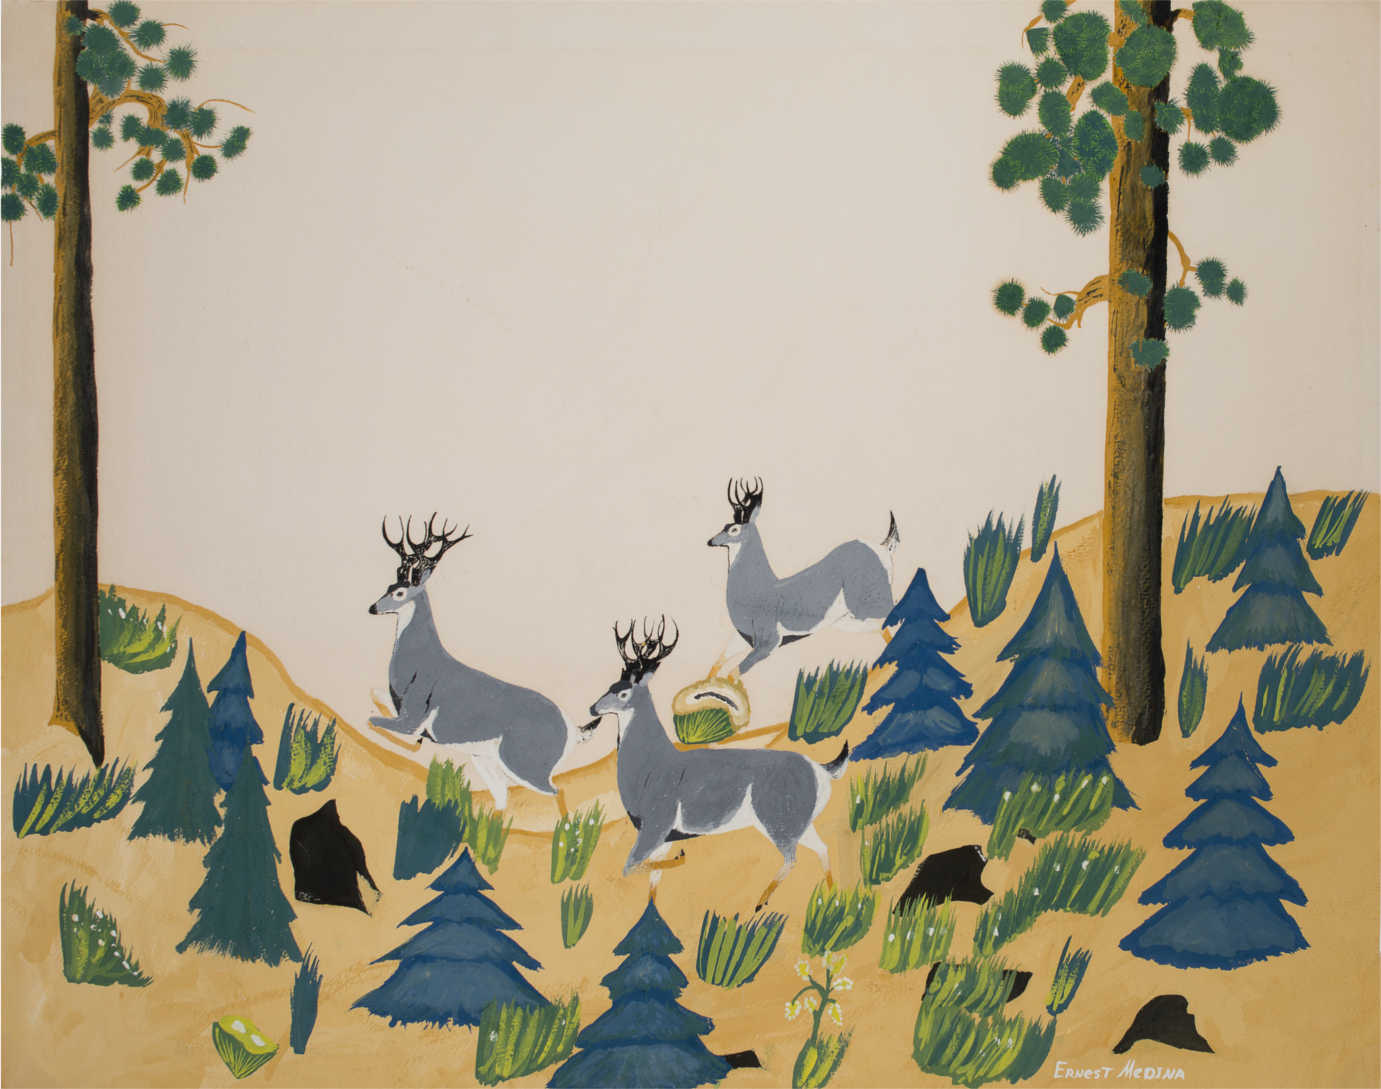 """Ernest Medina's (Zia Pueblo) """"Forest,"""" a student painting made at age 15 at Santa Fe Indian School, 1950. Gift of James T. Bialac. 4456-4"""